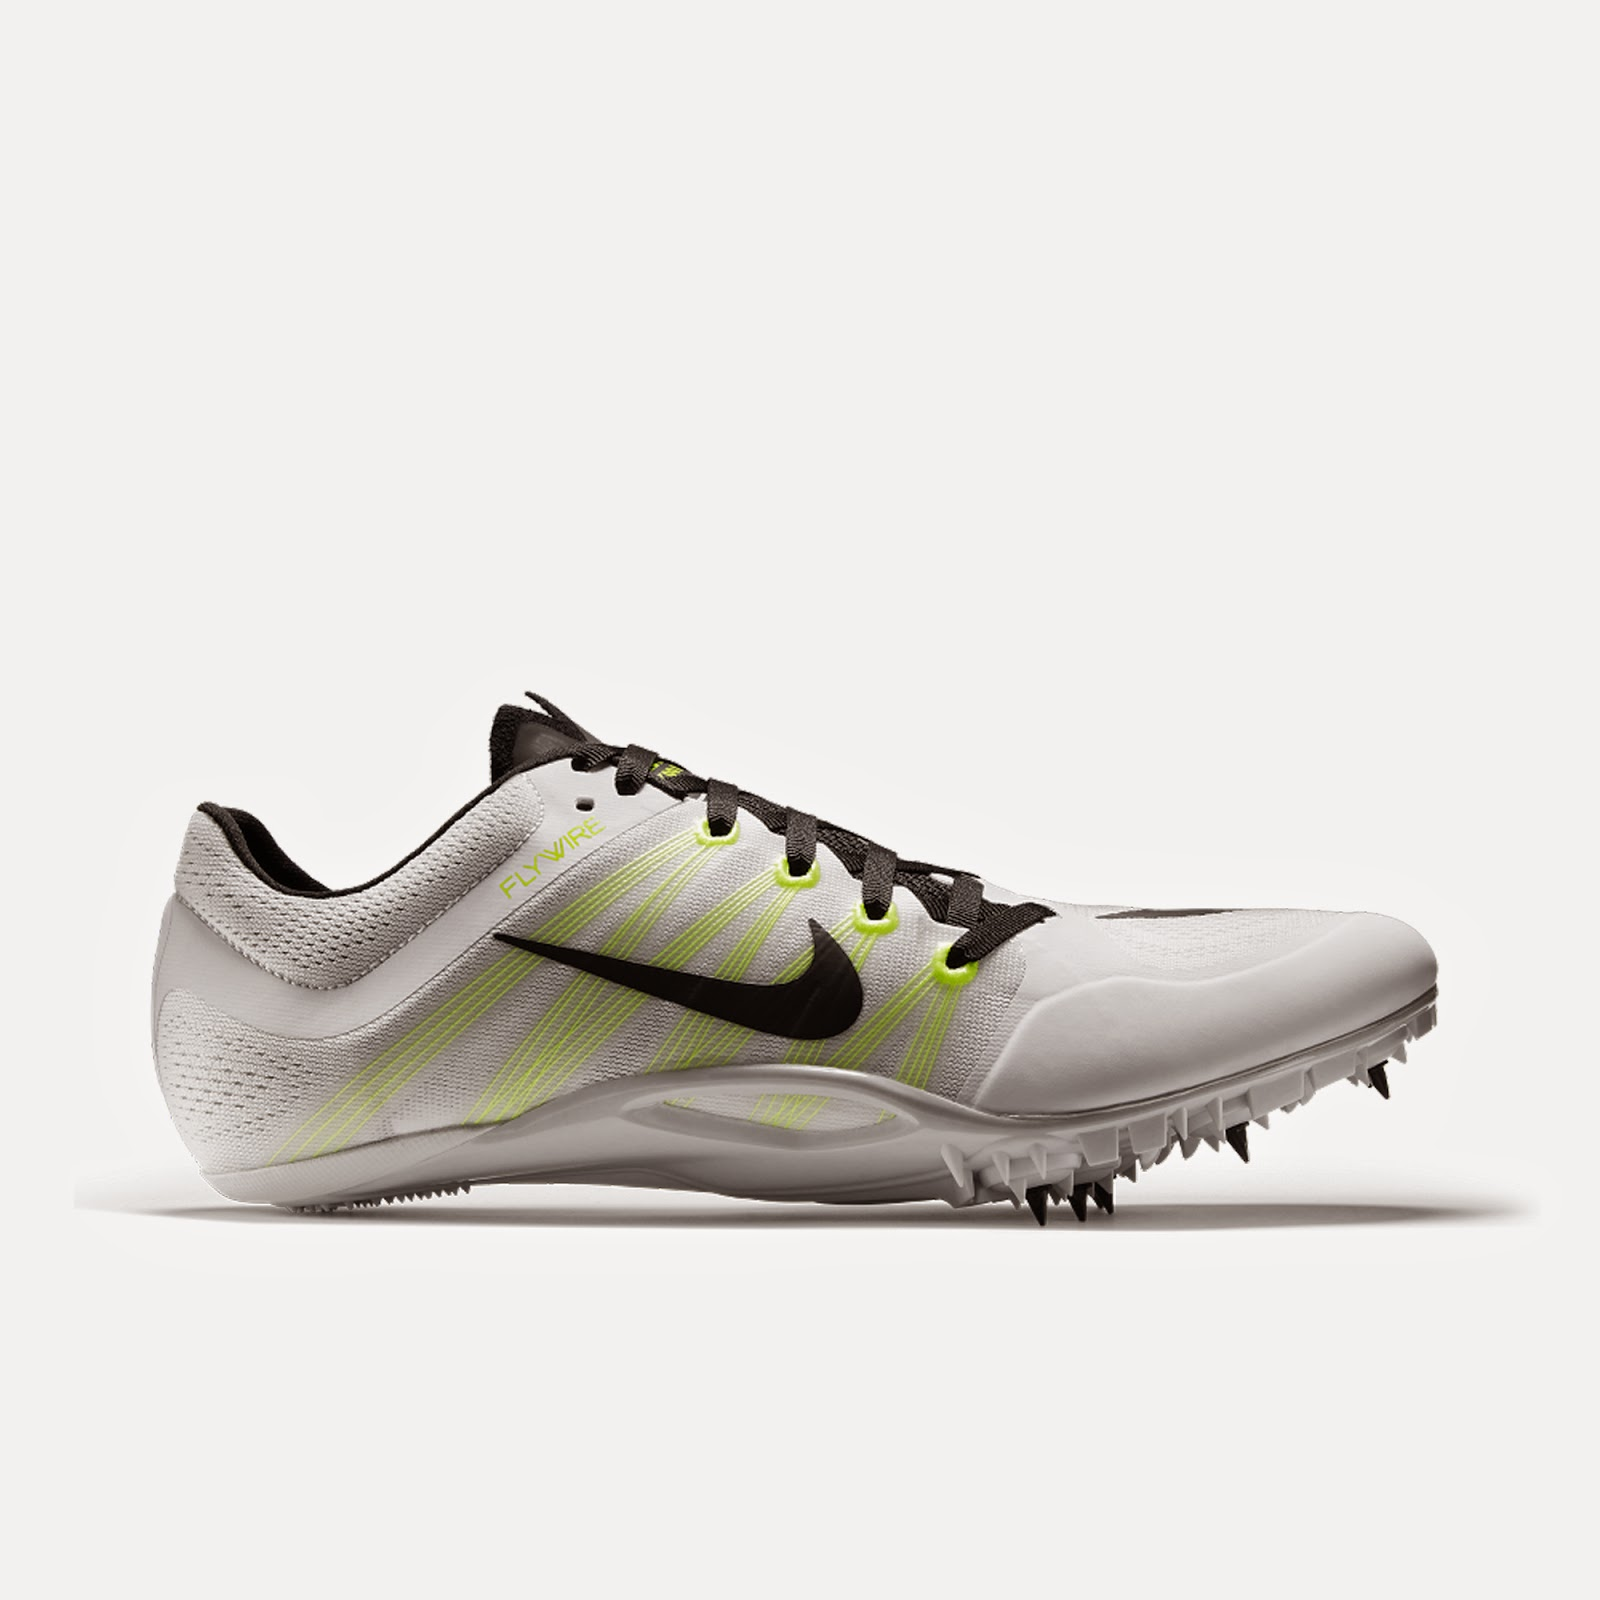 6f2977c20d1ba NIKE Track and Field Spikes 2015